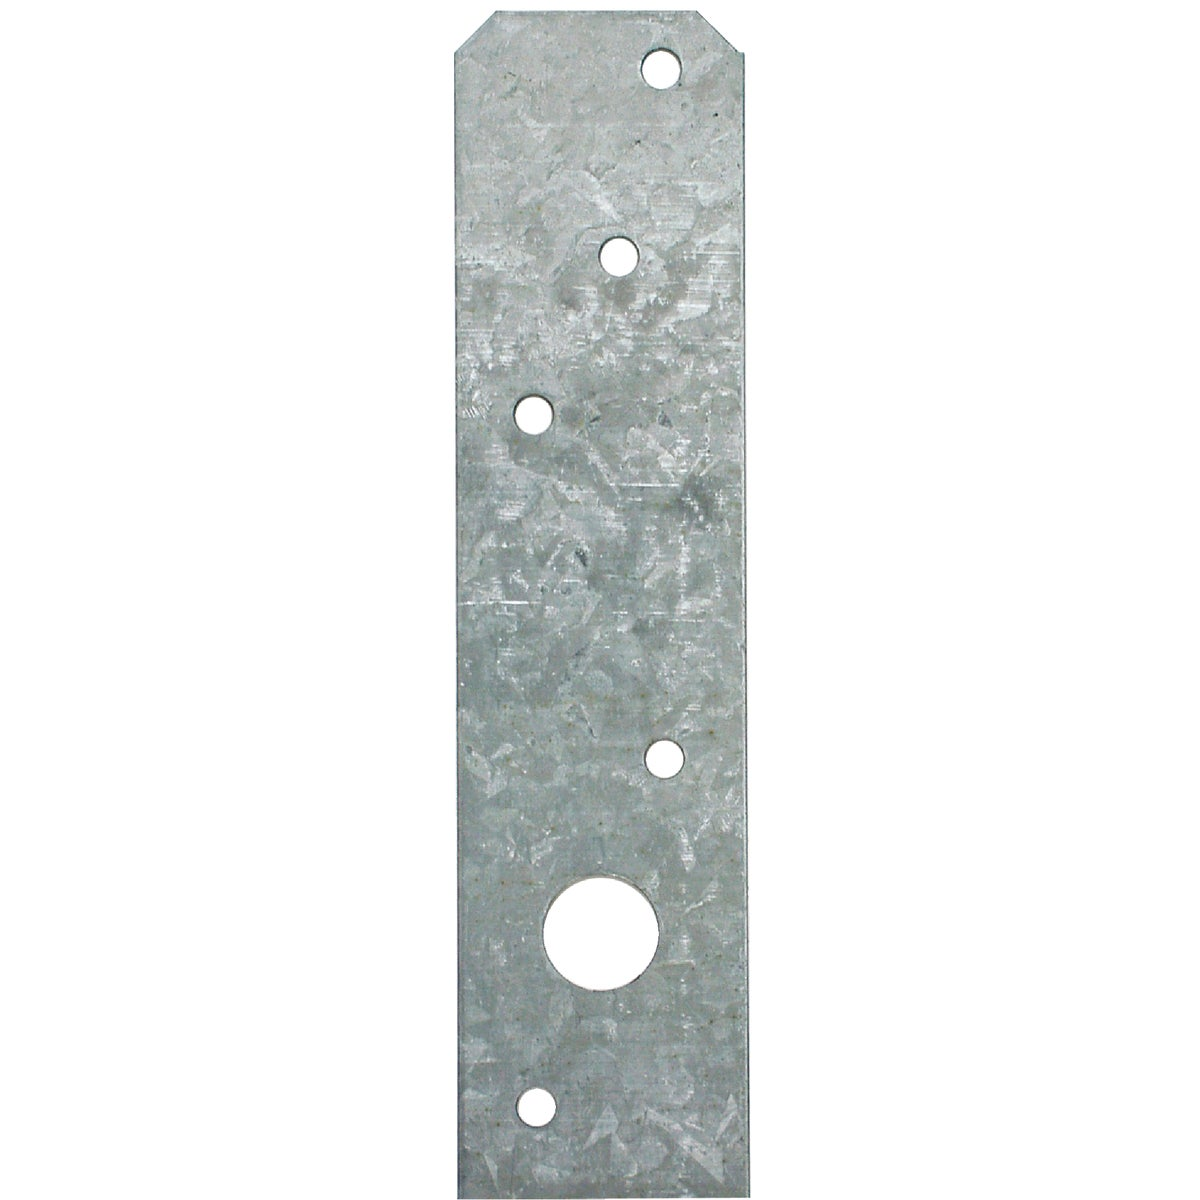 """21"""" STRAP TIE - LSTA21 by Simpson Strong Tie"""